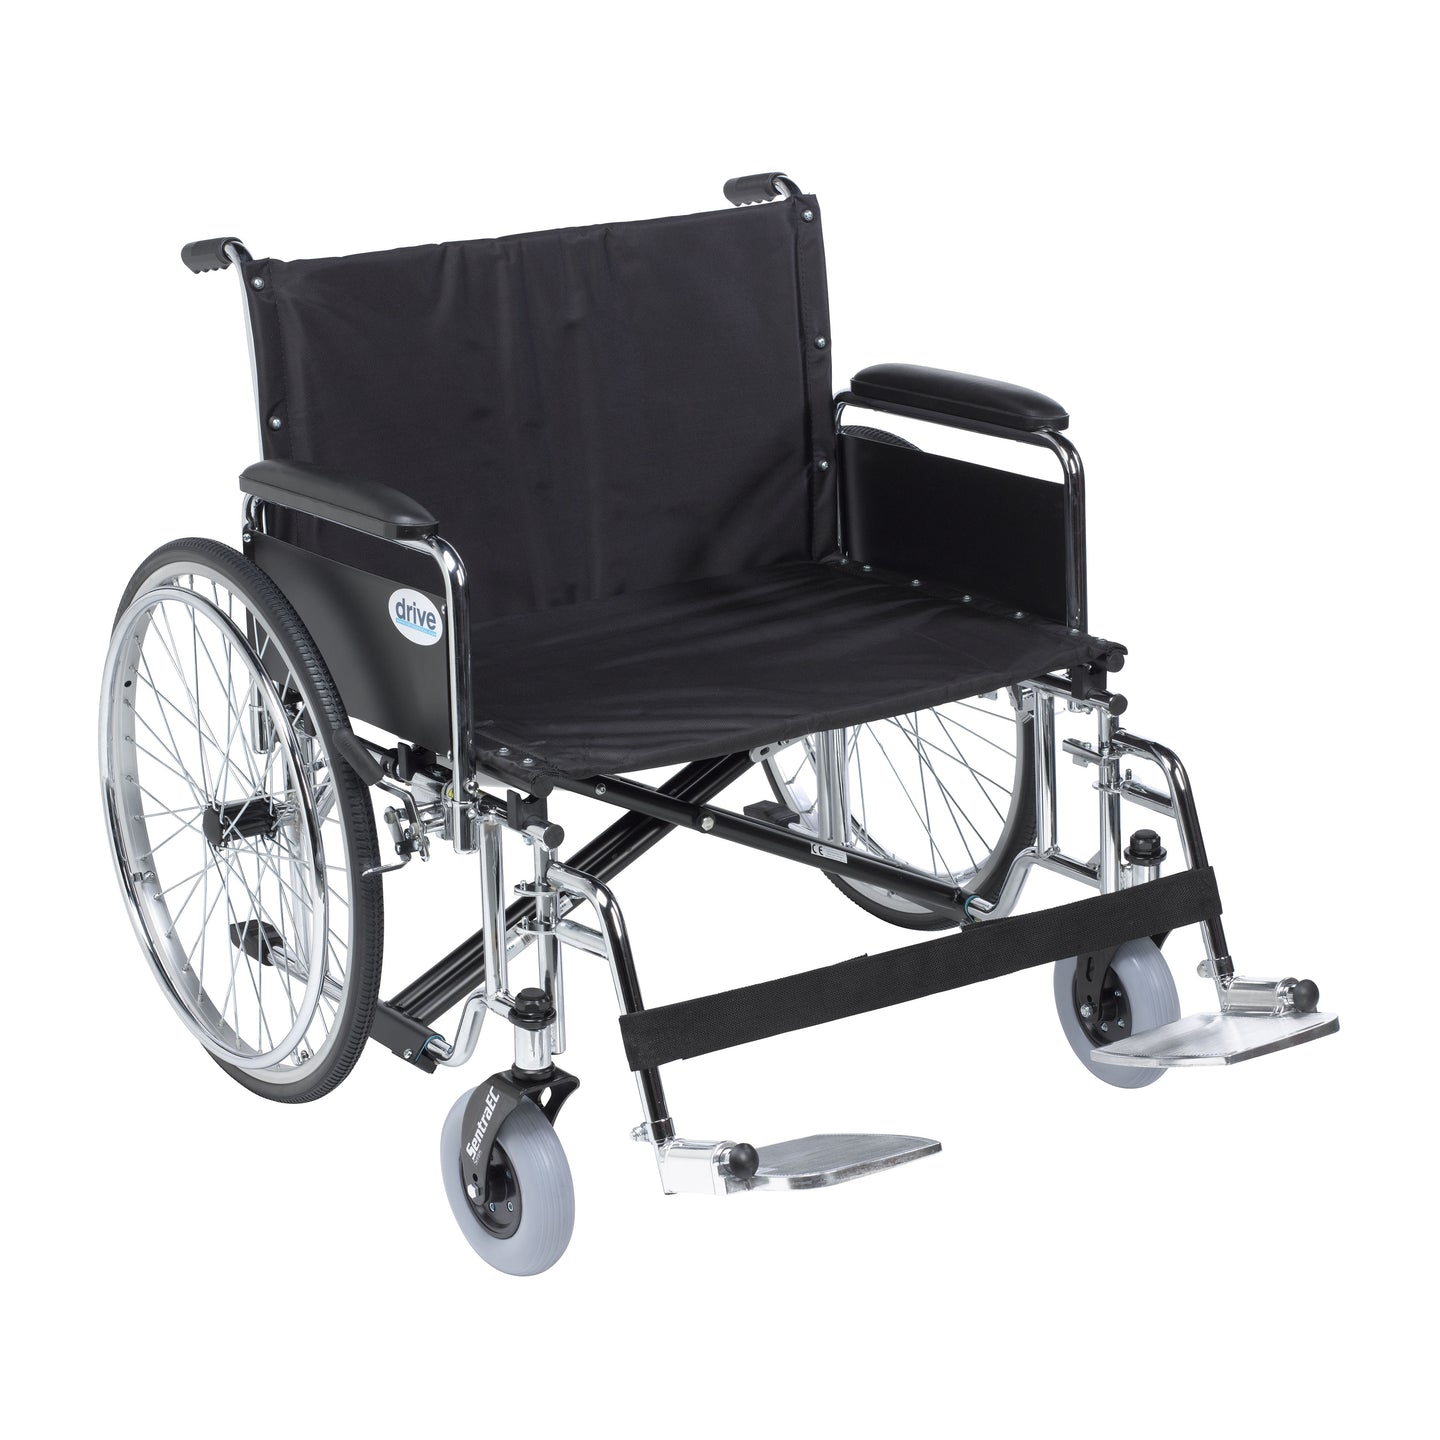 Drive Sentra EC Heavy Duty Extra Wide Wheelchair- Detachable Full Arms- Swing away Footrests- 26